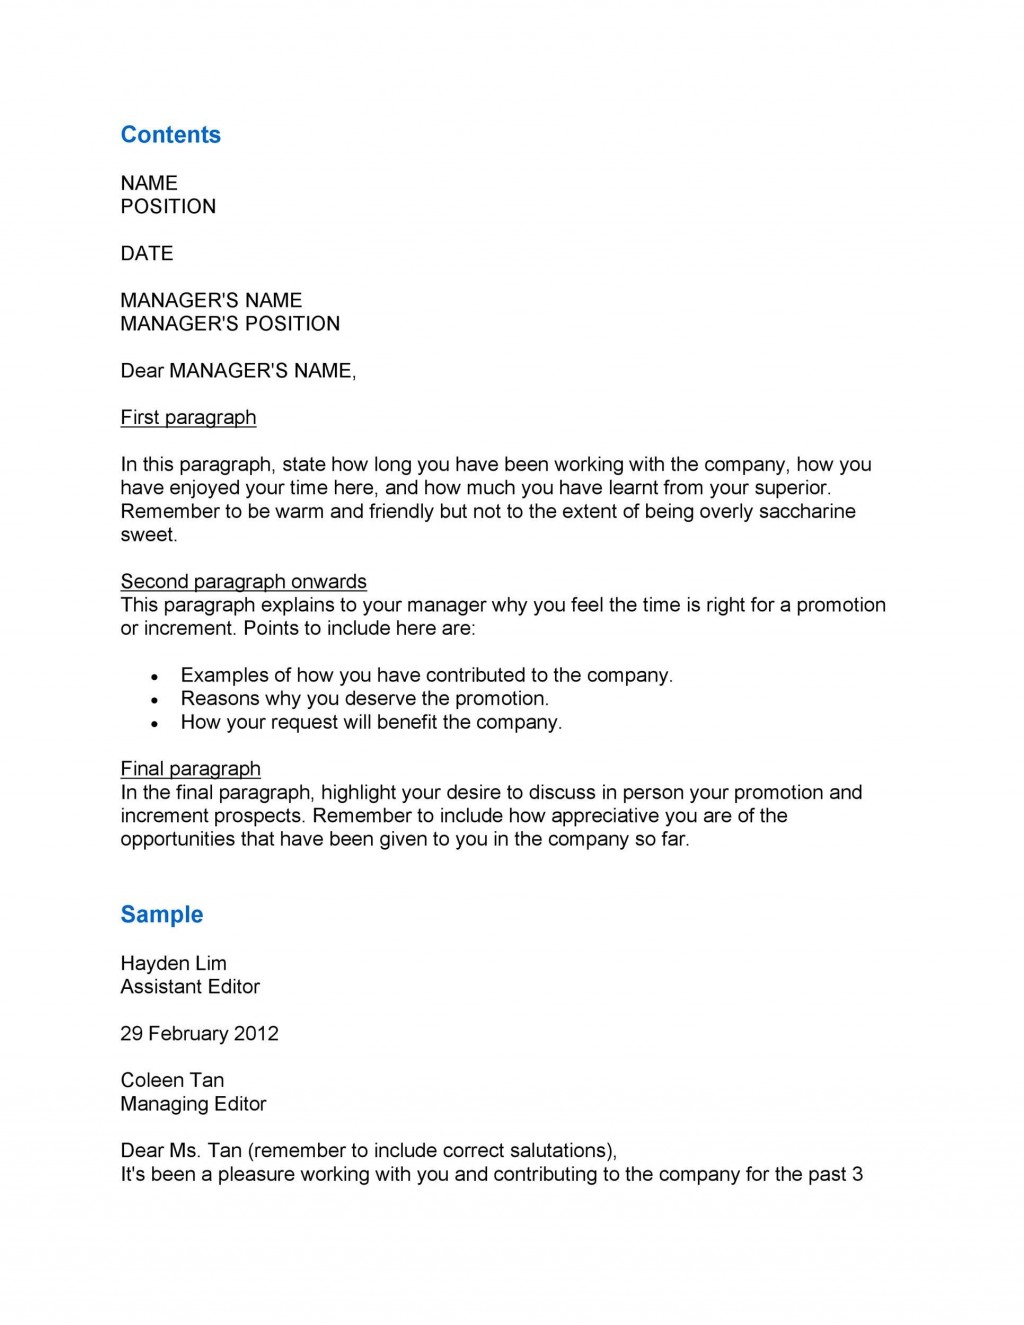 008 Fascinating Salary Increase Letter Template Picture  From Employer To Employee Australia No ForLarge